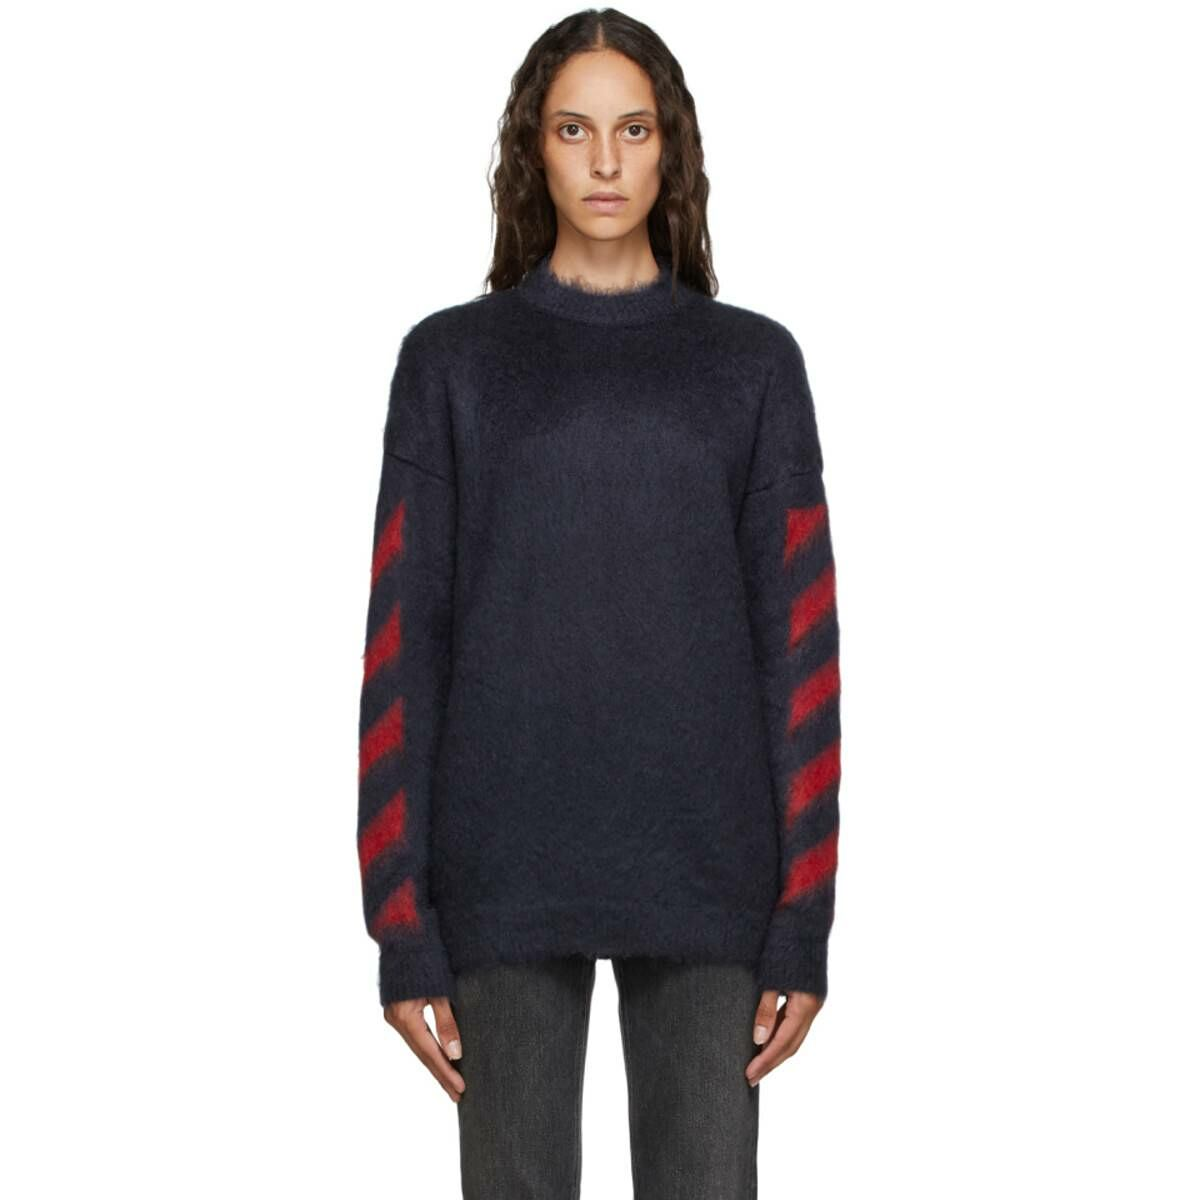 Off-White Navy and Red Mohair Diag Sweater Ssense USA WOMEN Women FASHION Womens KNITWEAR